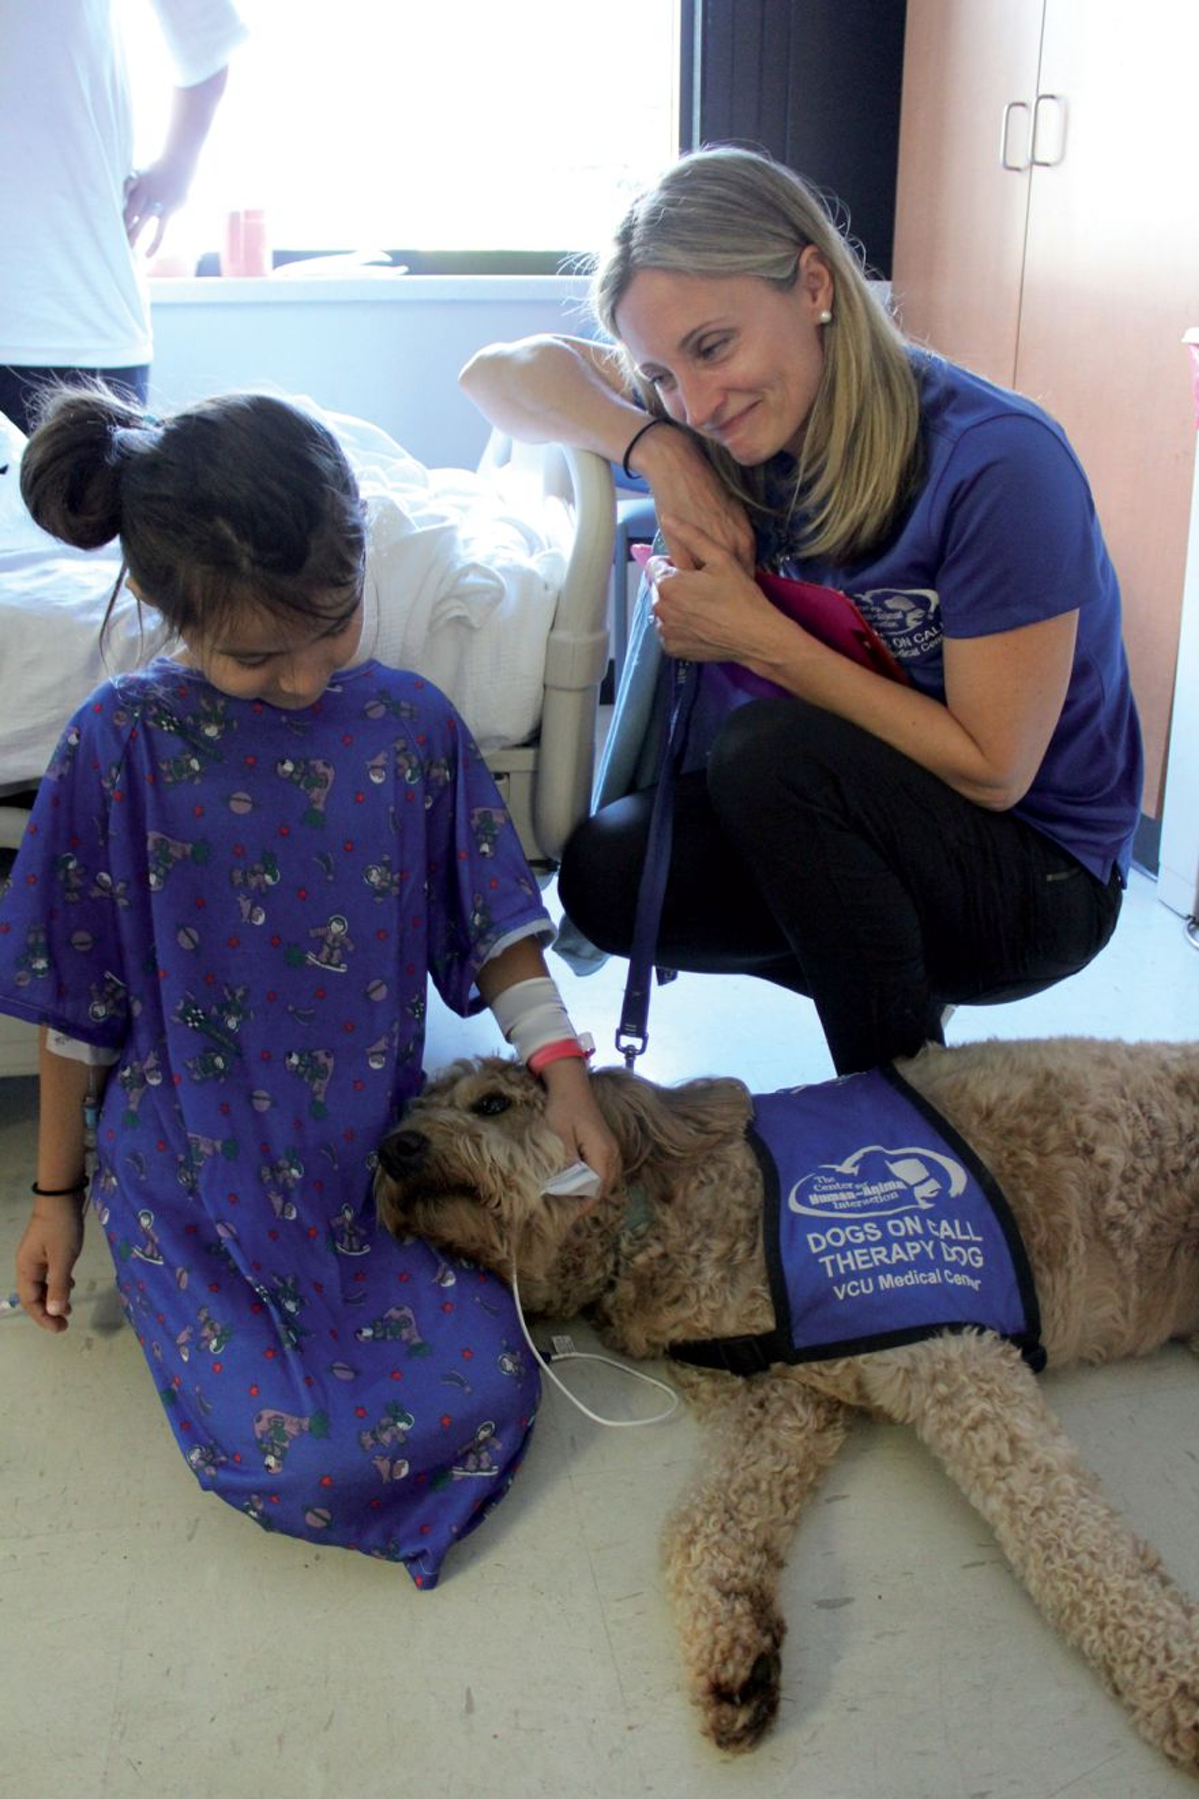 Figure 3. The VCU Dogs on Call (DoC) program has been very successful, with therapy dog teams routinely visiting most parts of the hospital. © Center for Human-Animal Interaction, School of Medicine, VCU